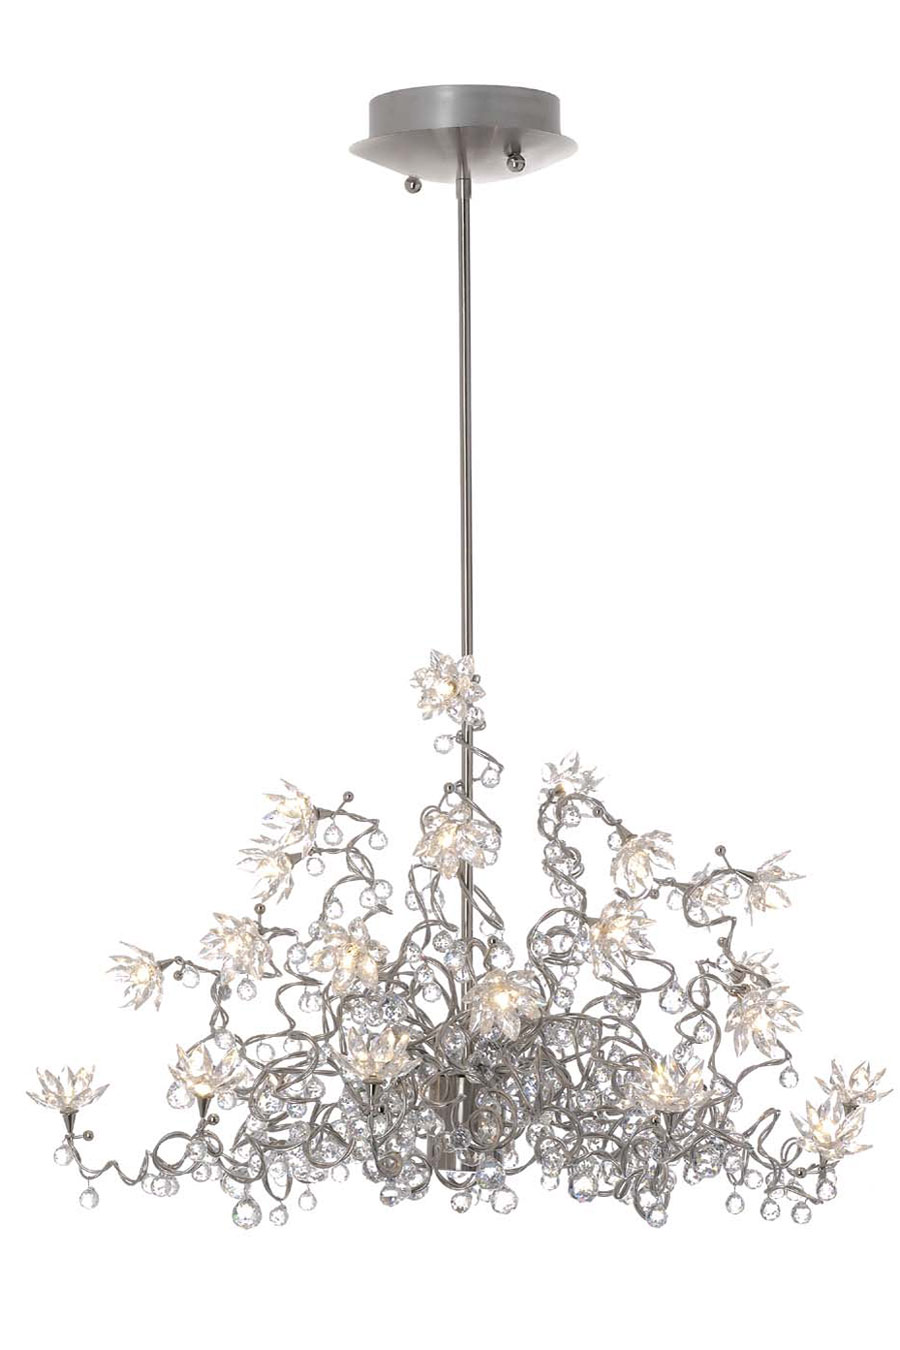 Jewel Diamond Lustre transparent Chandelier 24 lumières en verre transparent. Harco Loor.